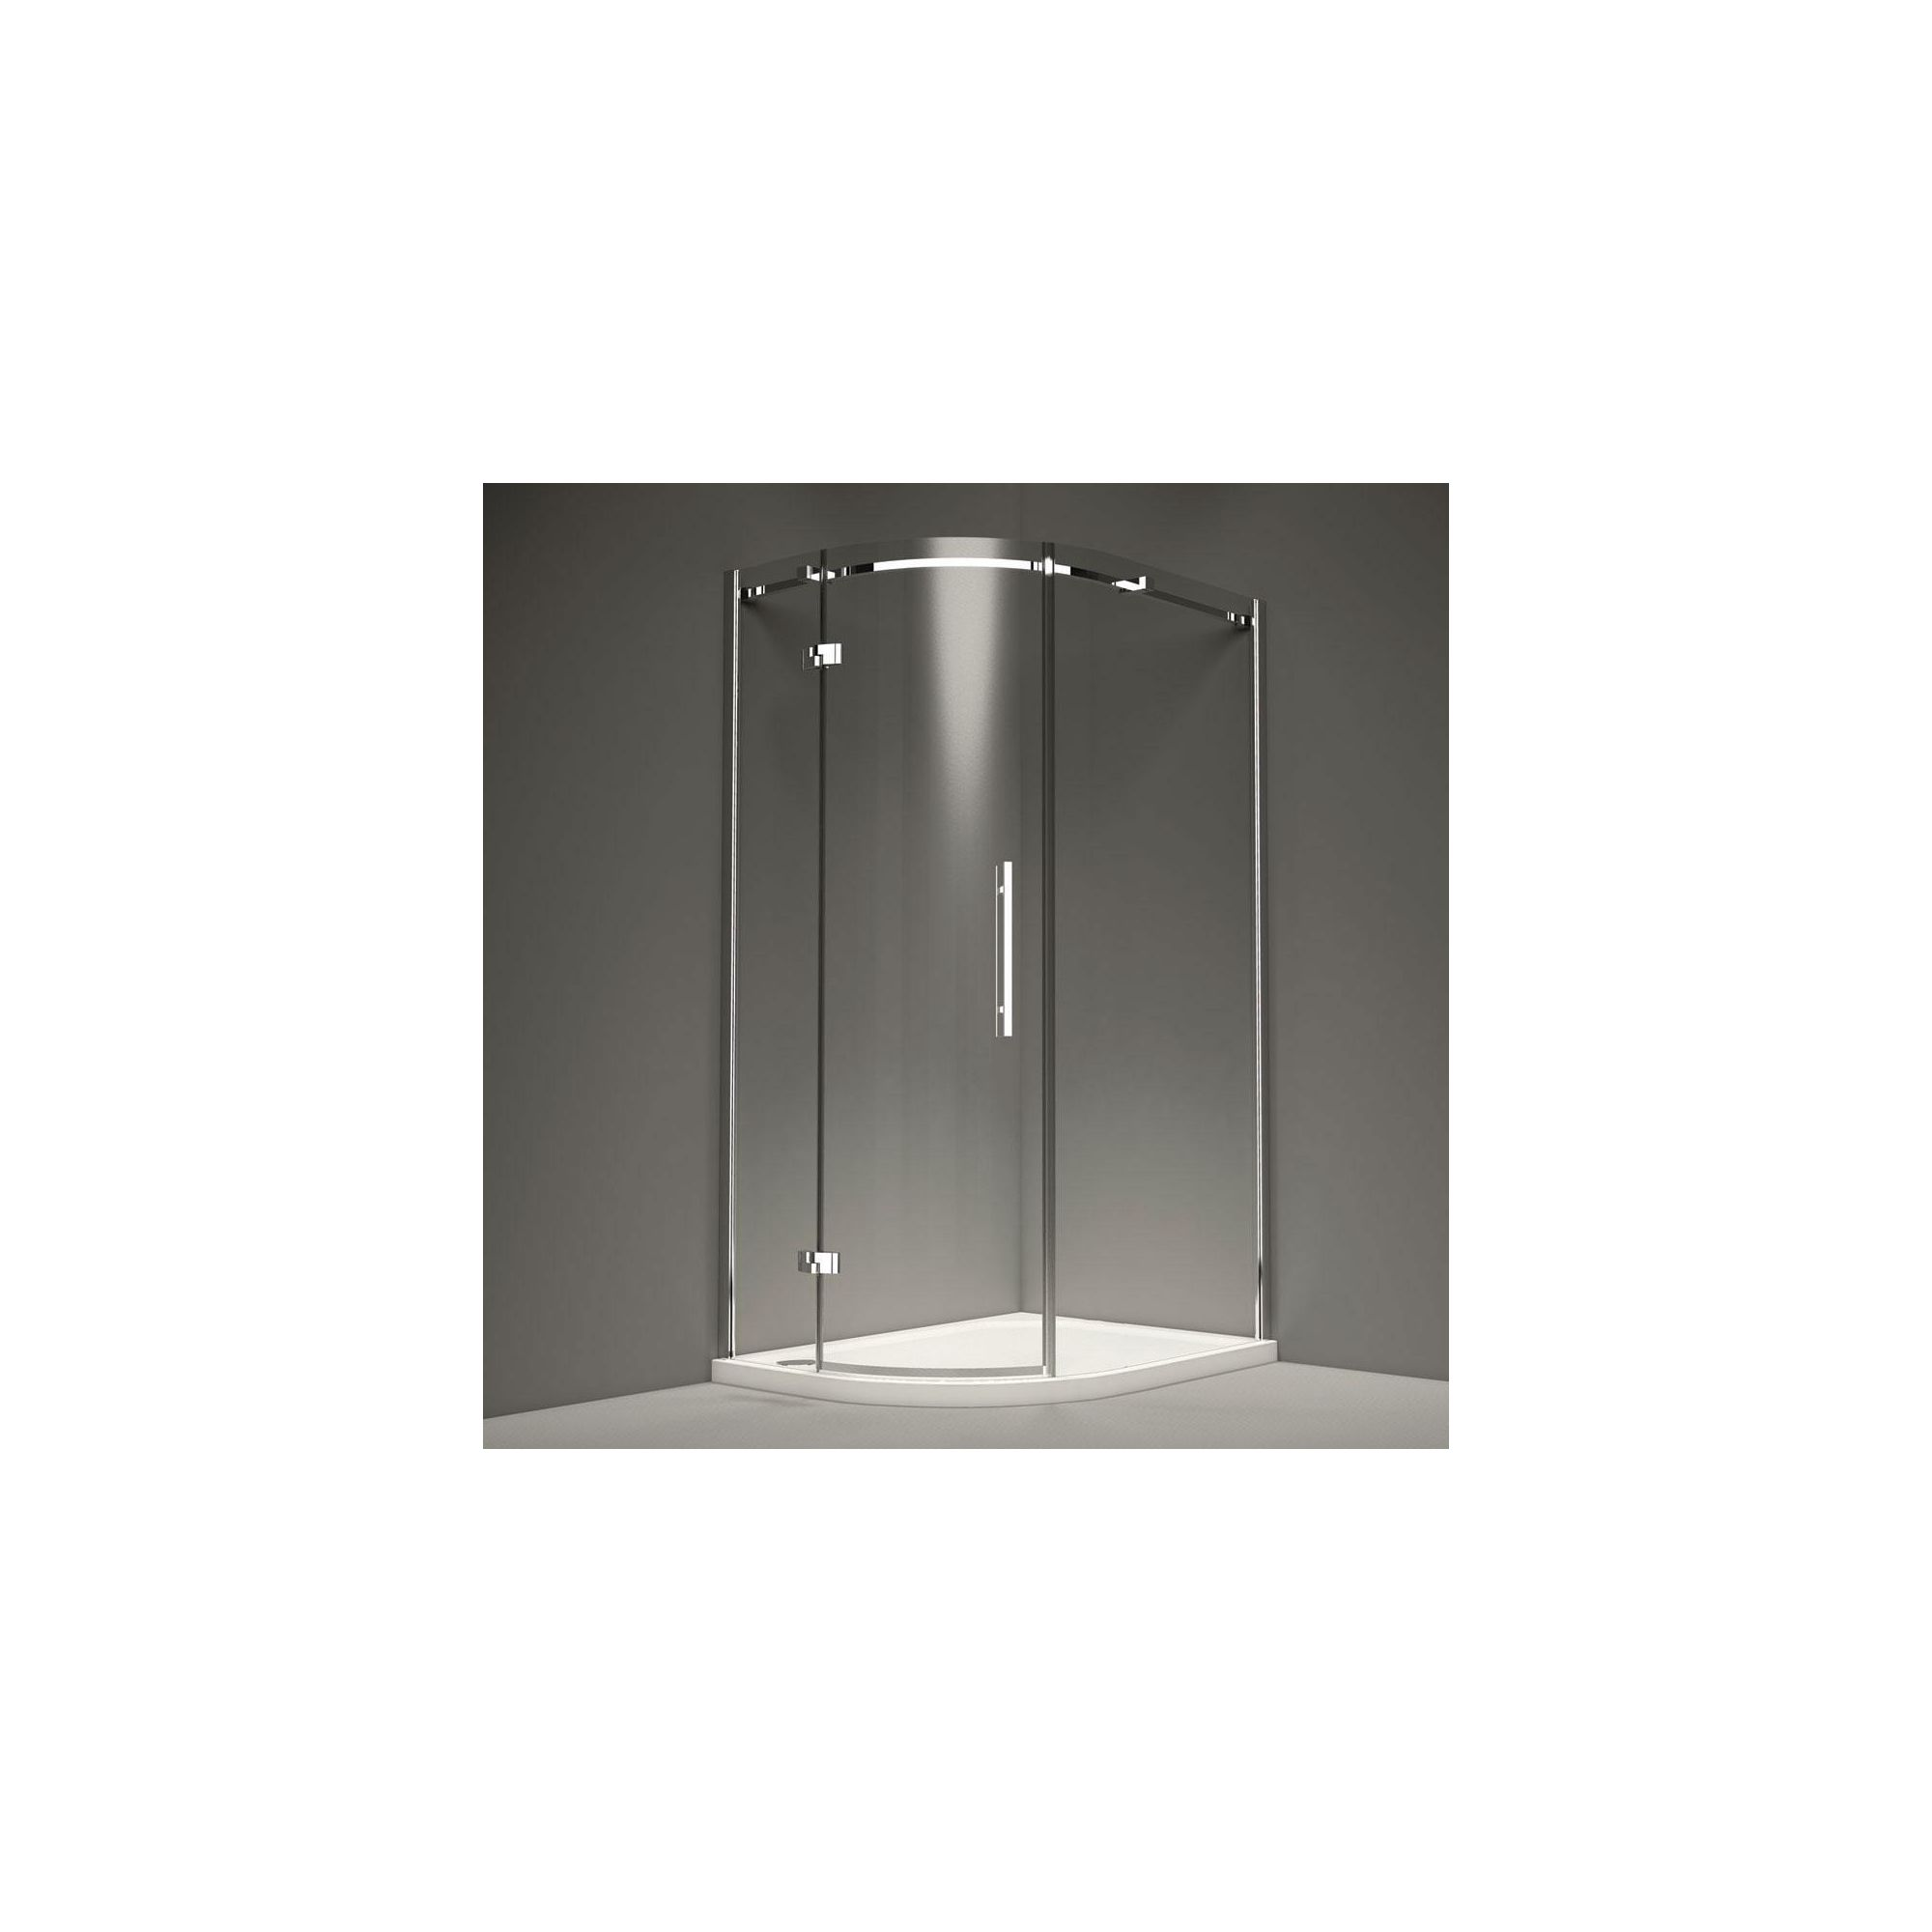 Merlyn Series 9 Single Quadrant Shower Door, 900mm x 900mm, 8mm Glass, Left Handed at Tesco Direct